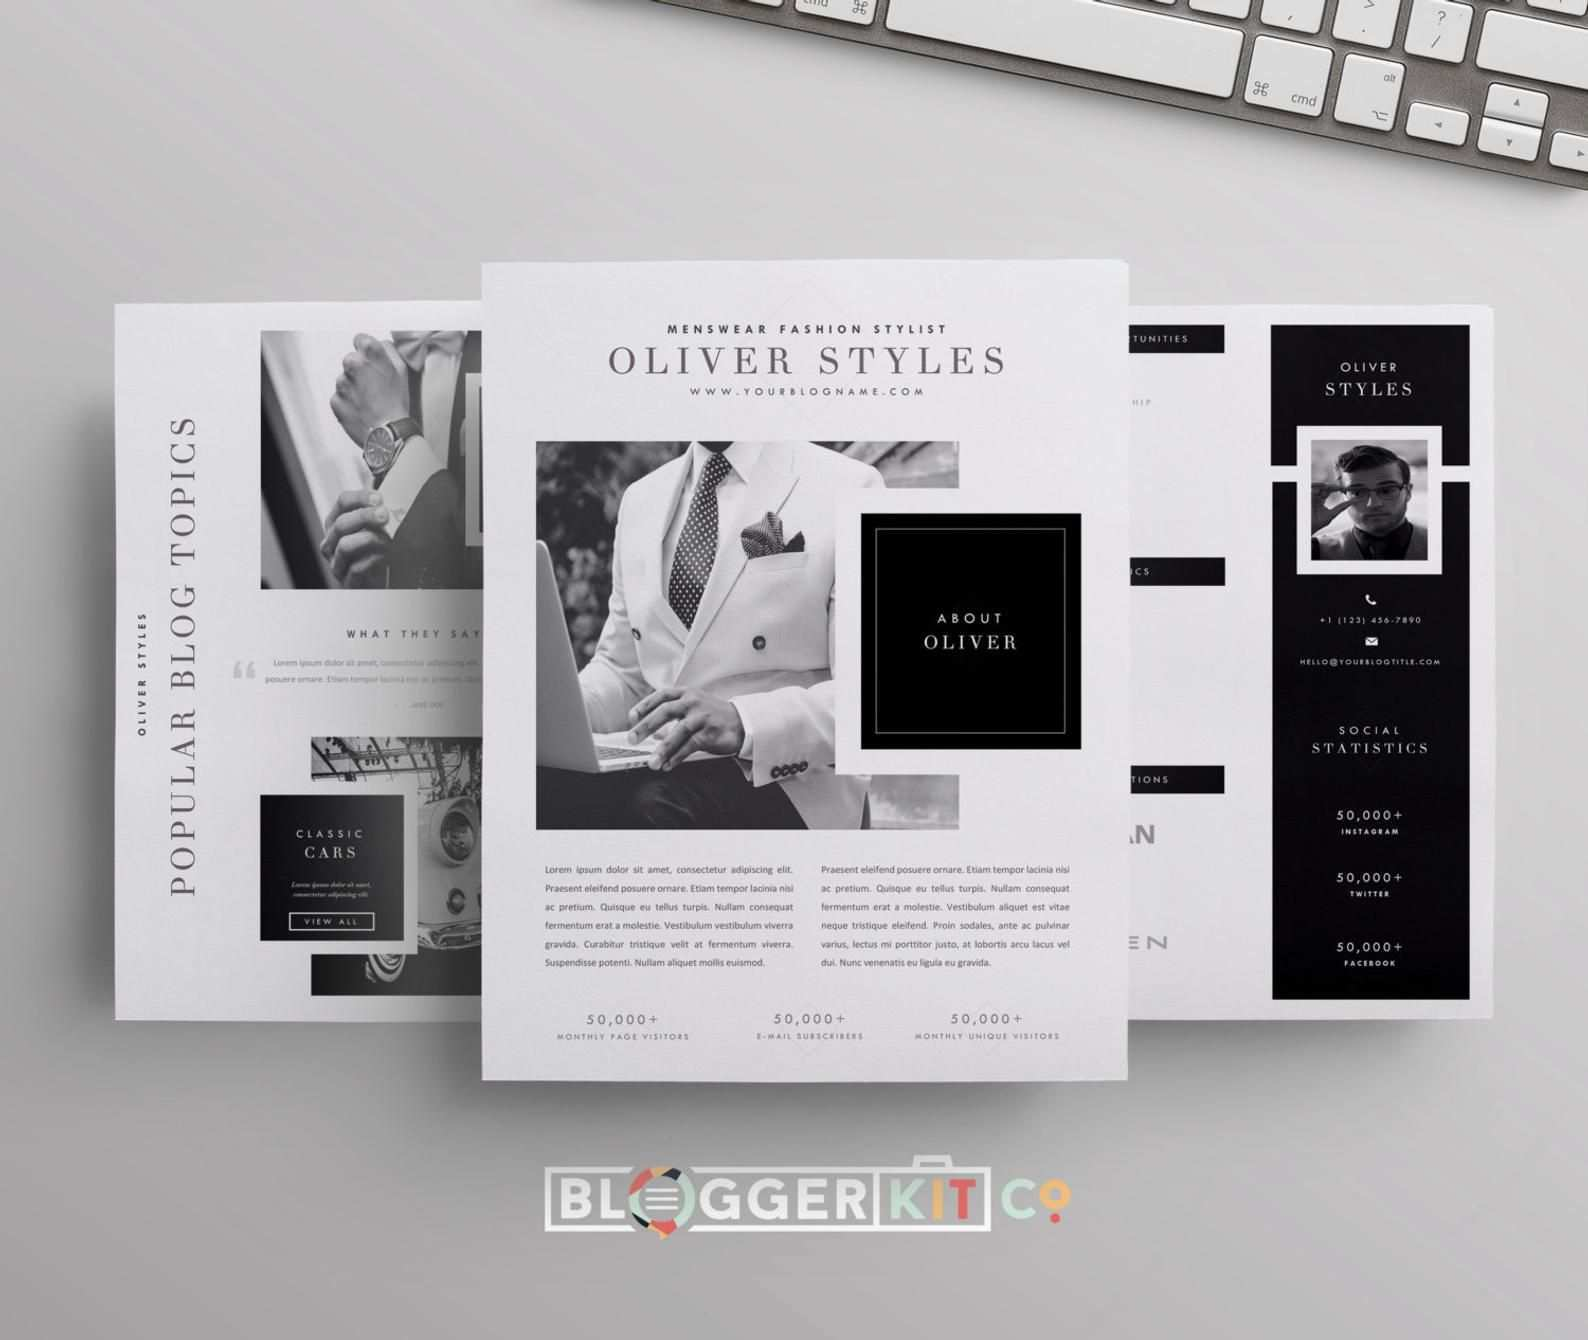 Drei Seiten Media Kit Vorlage Drucken Sie Kit Vorlage Etsy Media Kit Template Blogger Media Kit Media Kit